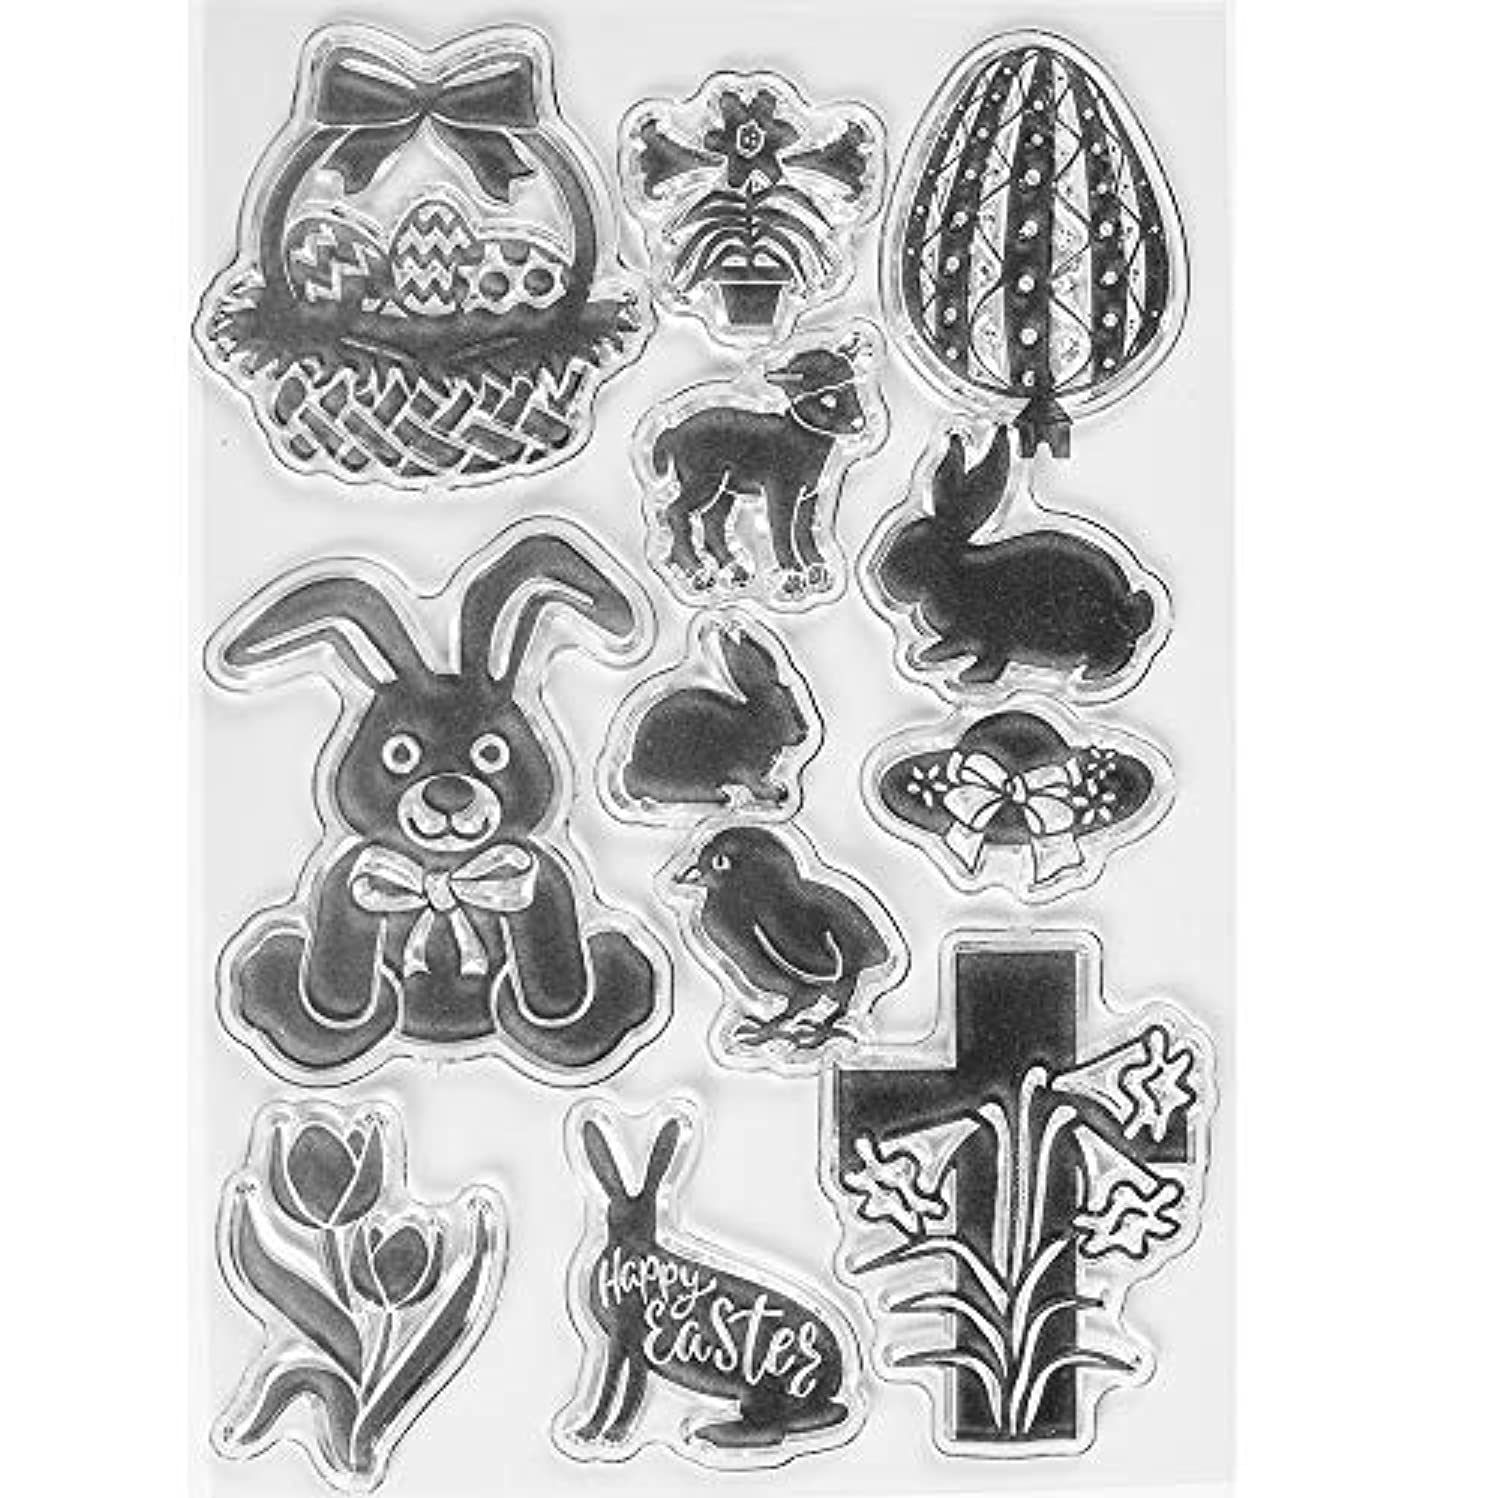 MaGuo Happy Easter Bunny Clear Stamps for Card Making Decoration and DIY Scrapbooking